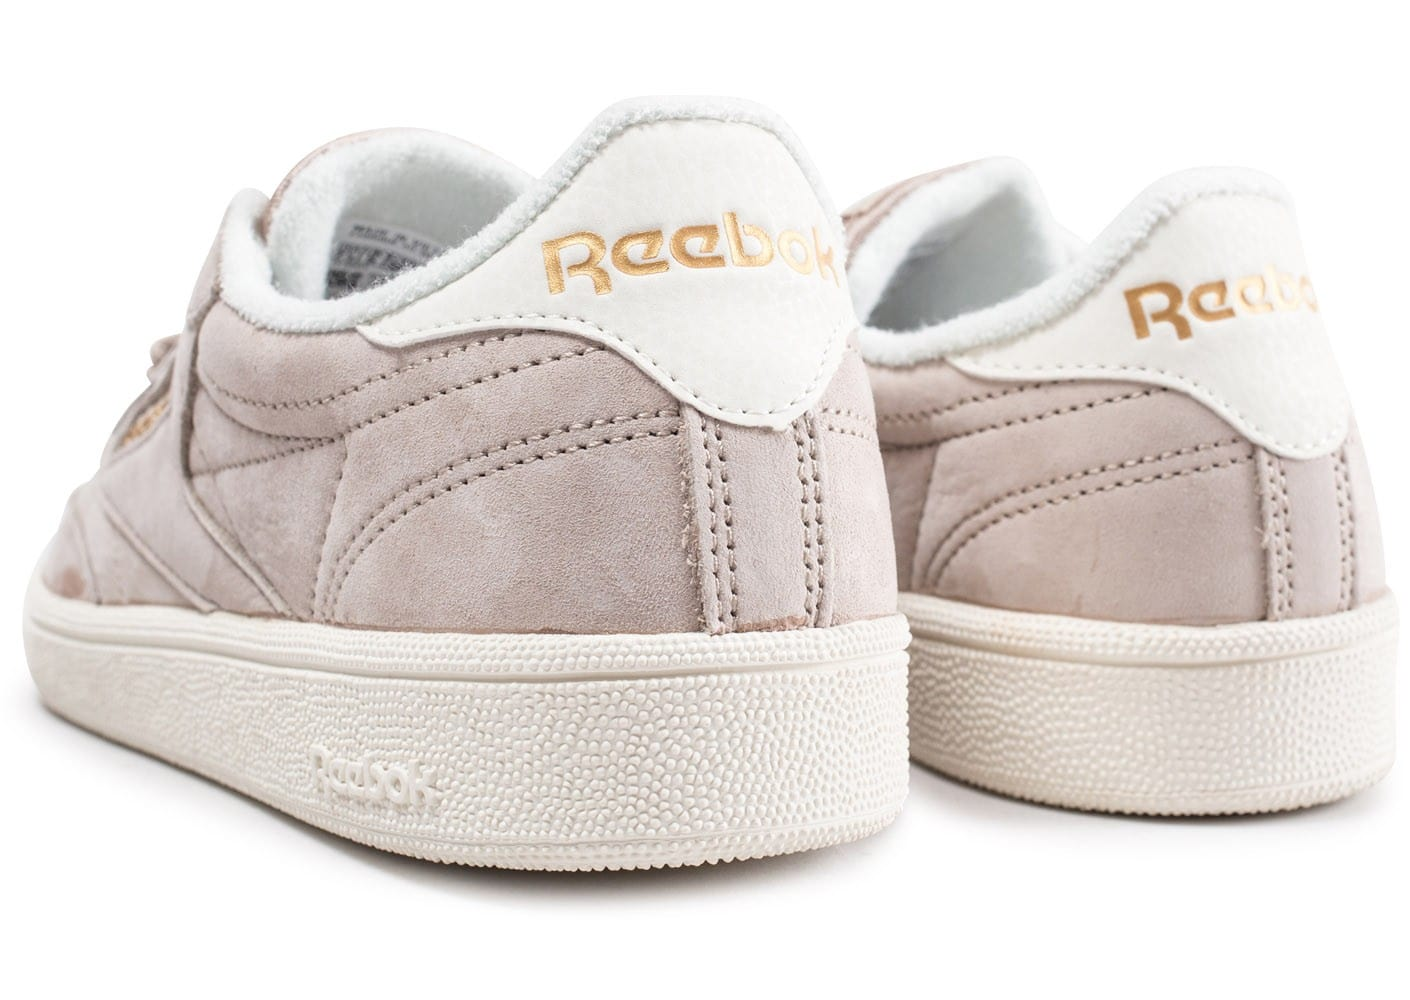 d319be12a8c Reebok Club C 85 Vintage beige - Chaussures Baskets femme .